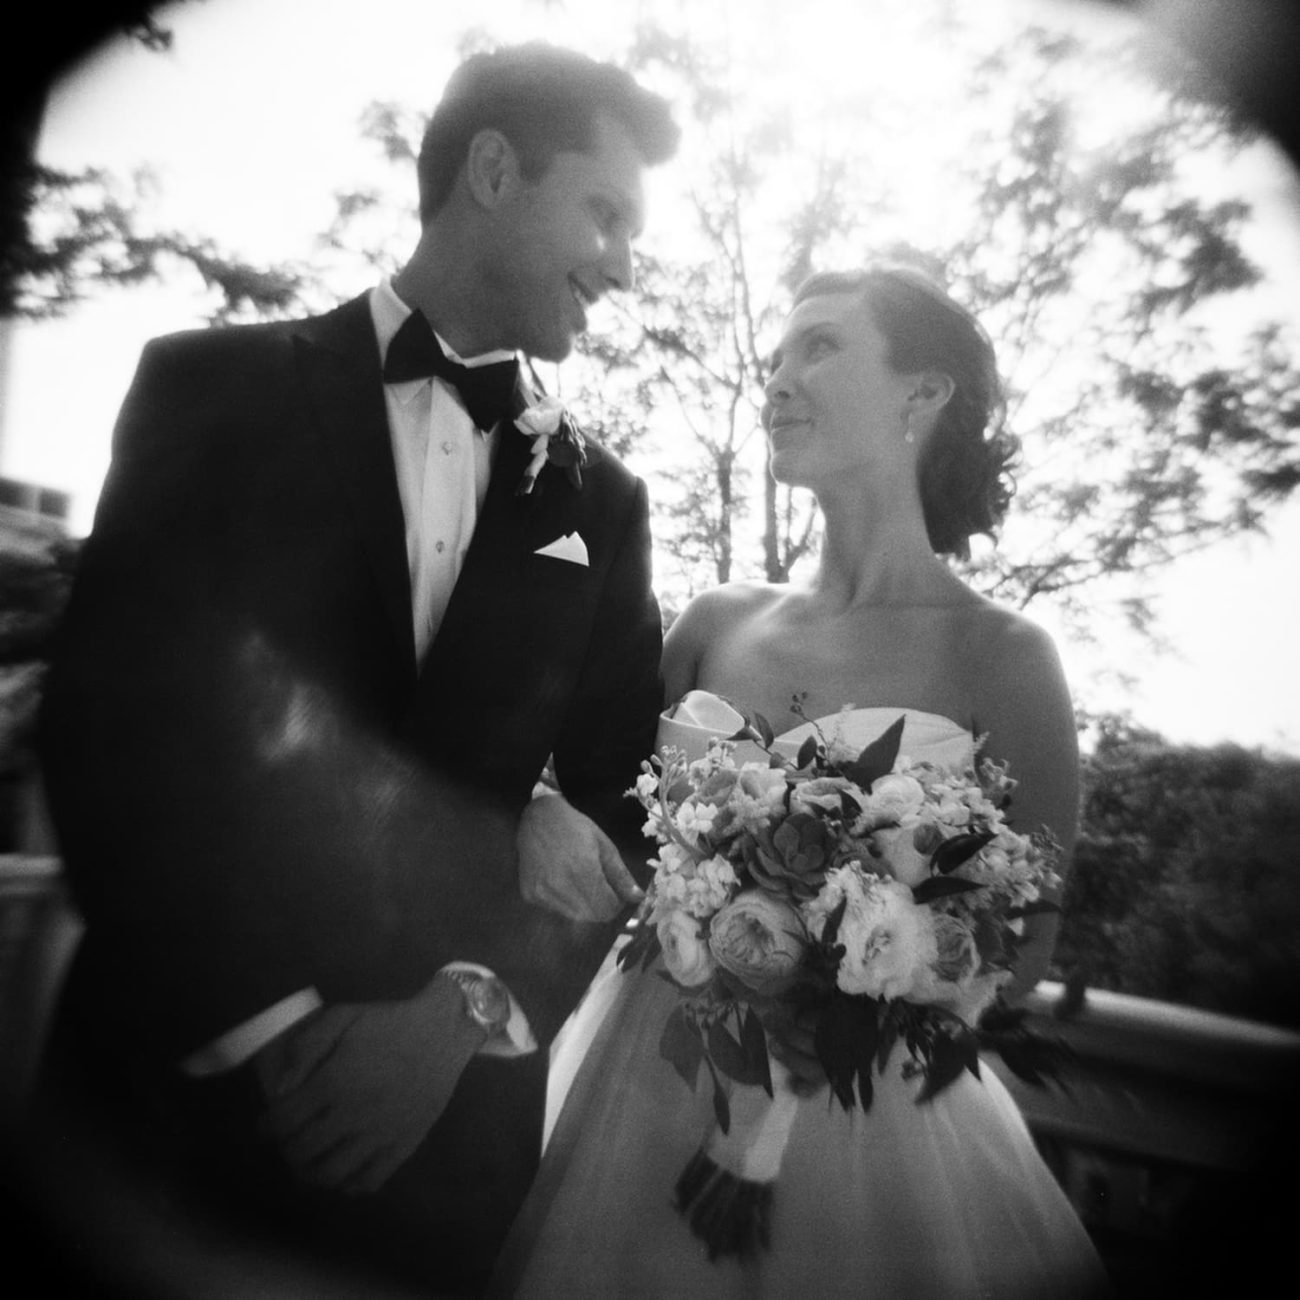 holga wedding photography